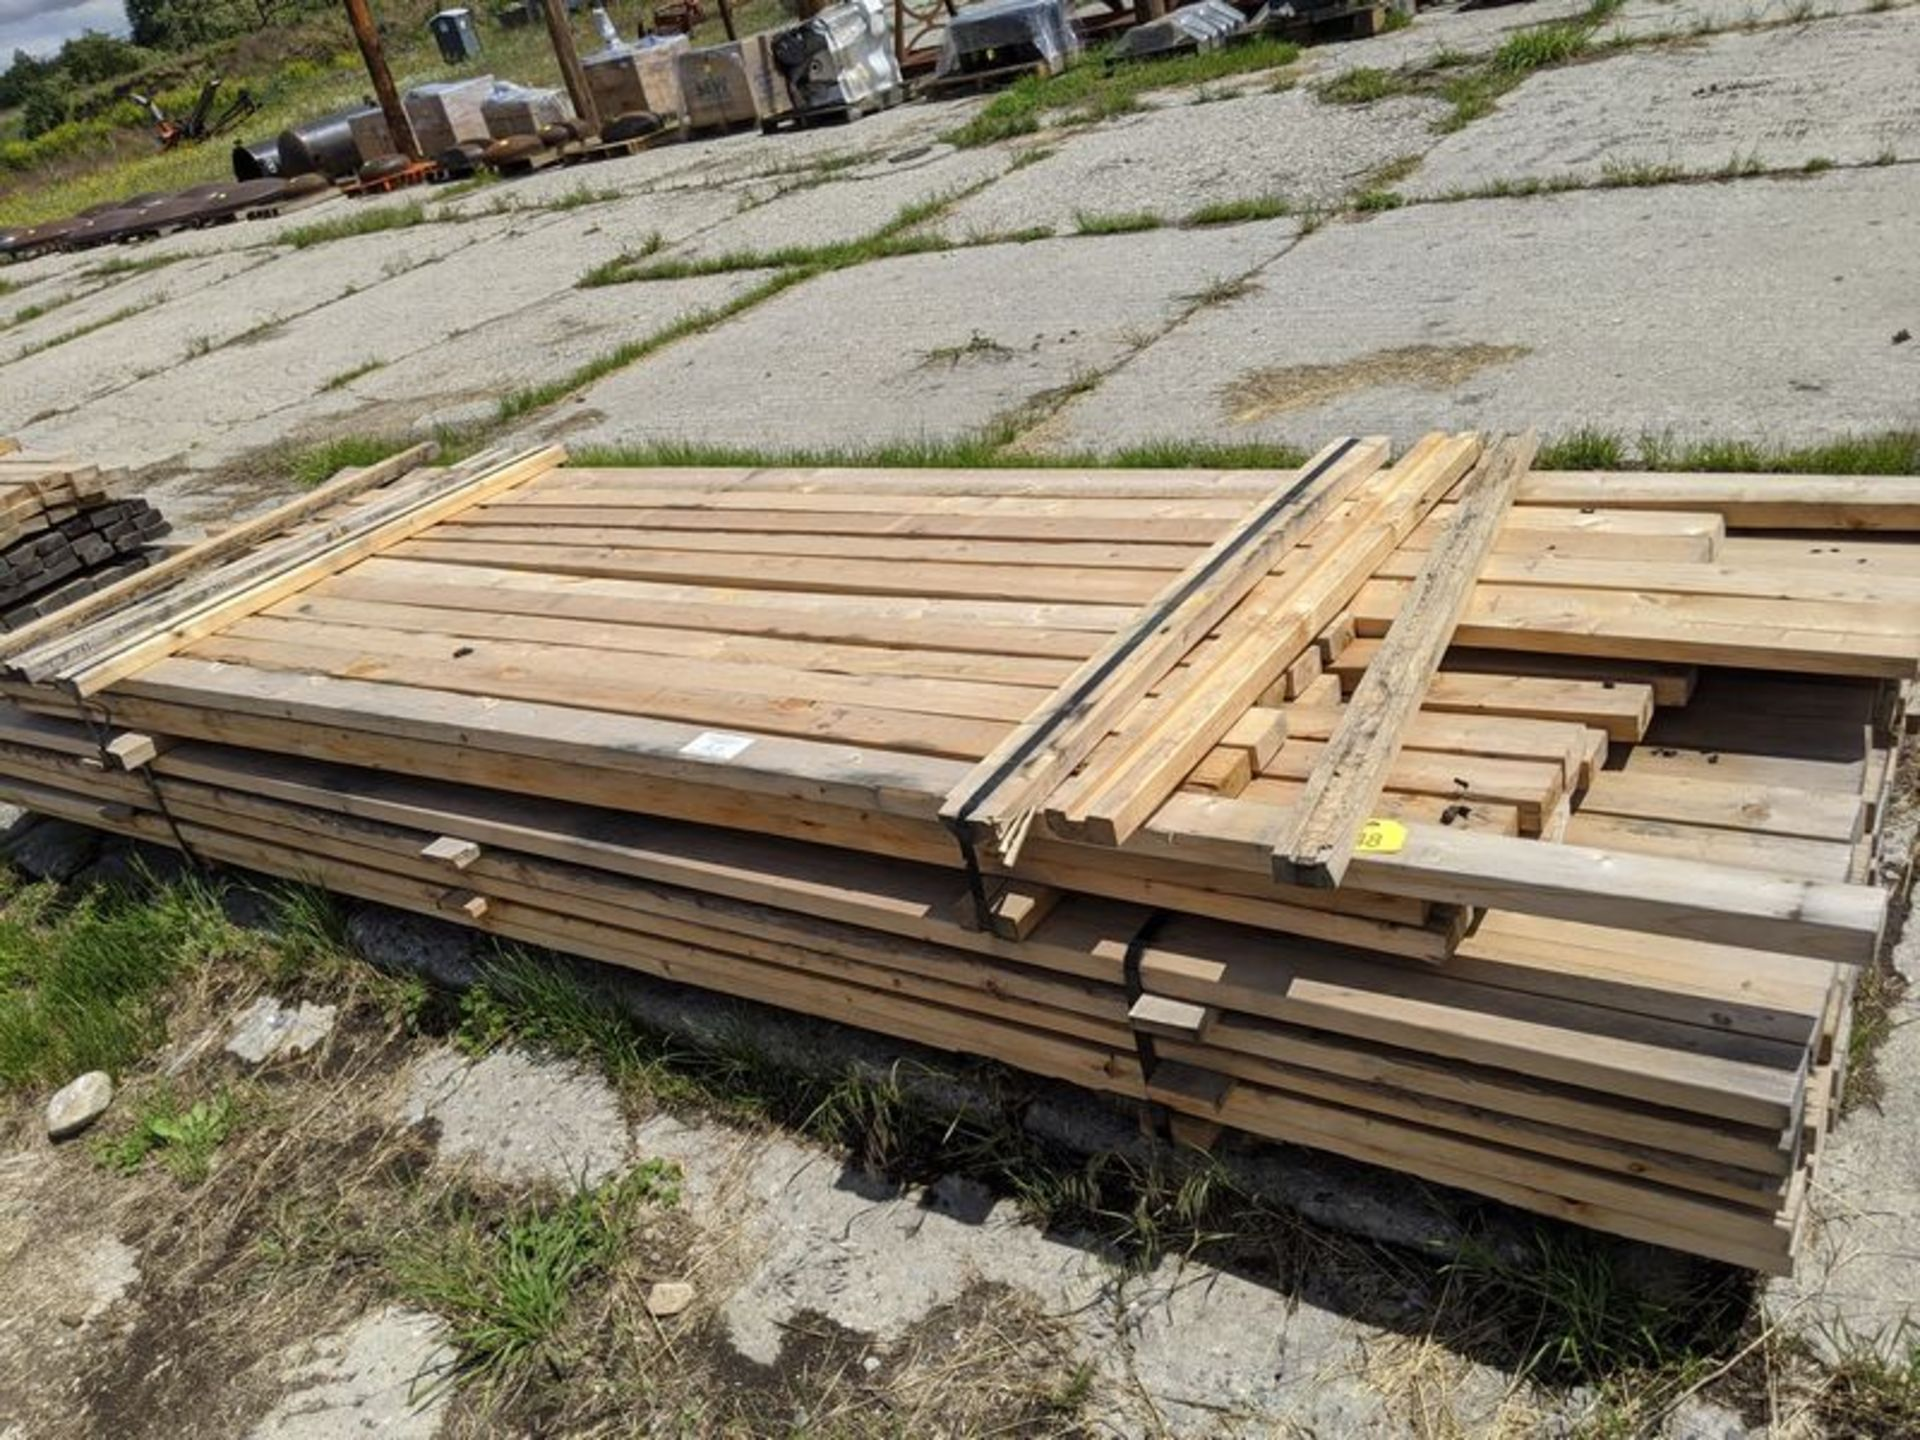 Lot 20 - 2 Slings 2 x 4, Assorted Lengths